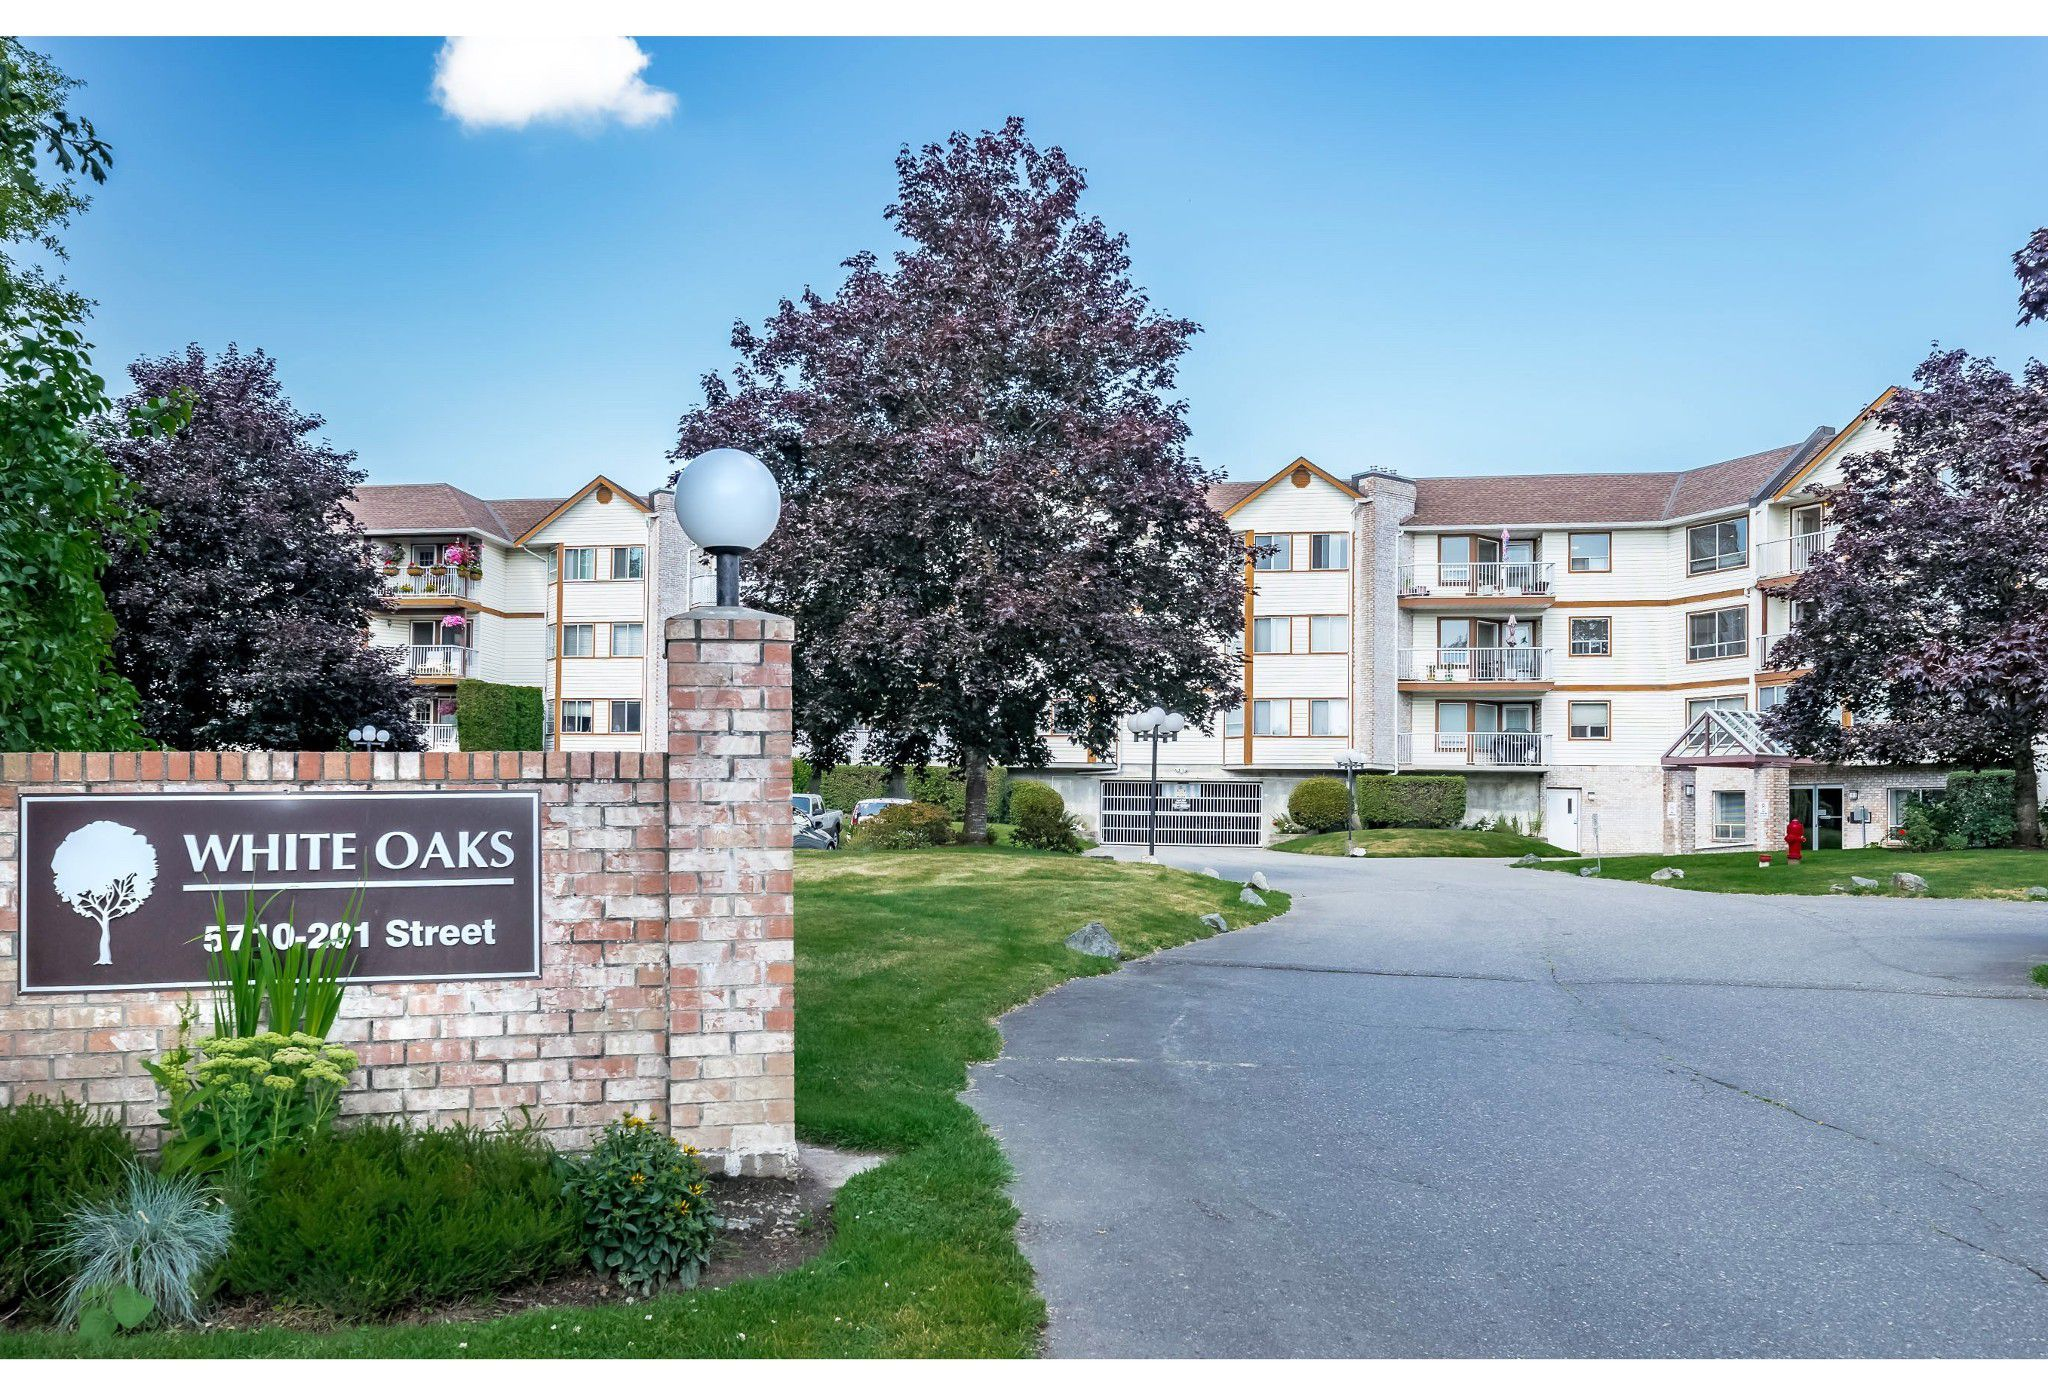 """Main Photo: 312 5710 201 Street in Langley: Langley City Condo for sale in """"WHITE OAKS"""" : MLS®# R2387162"""